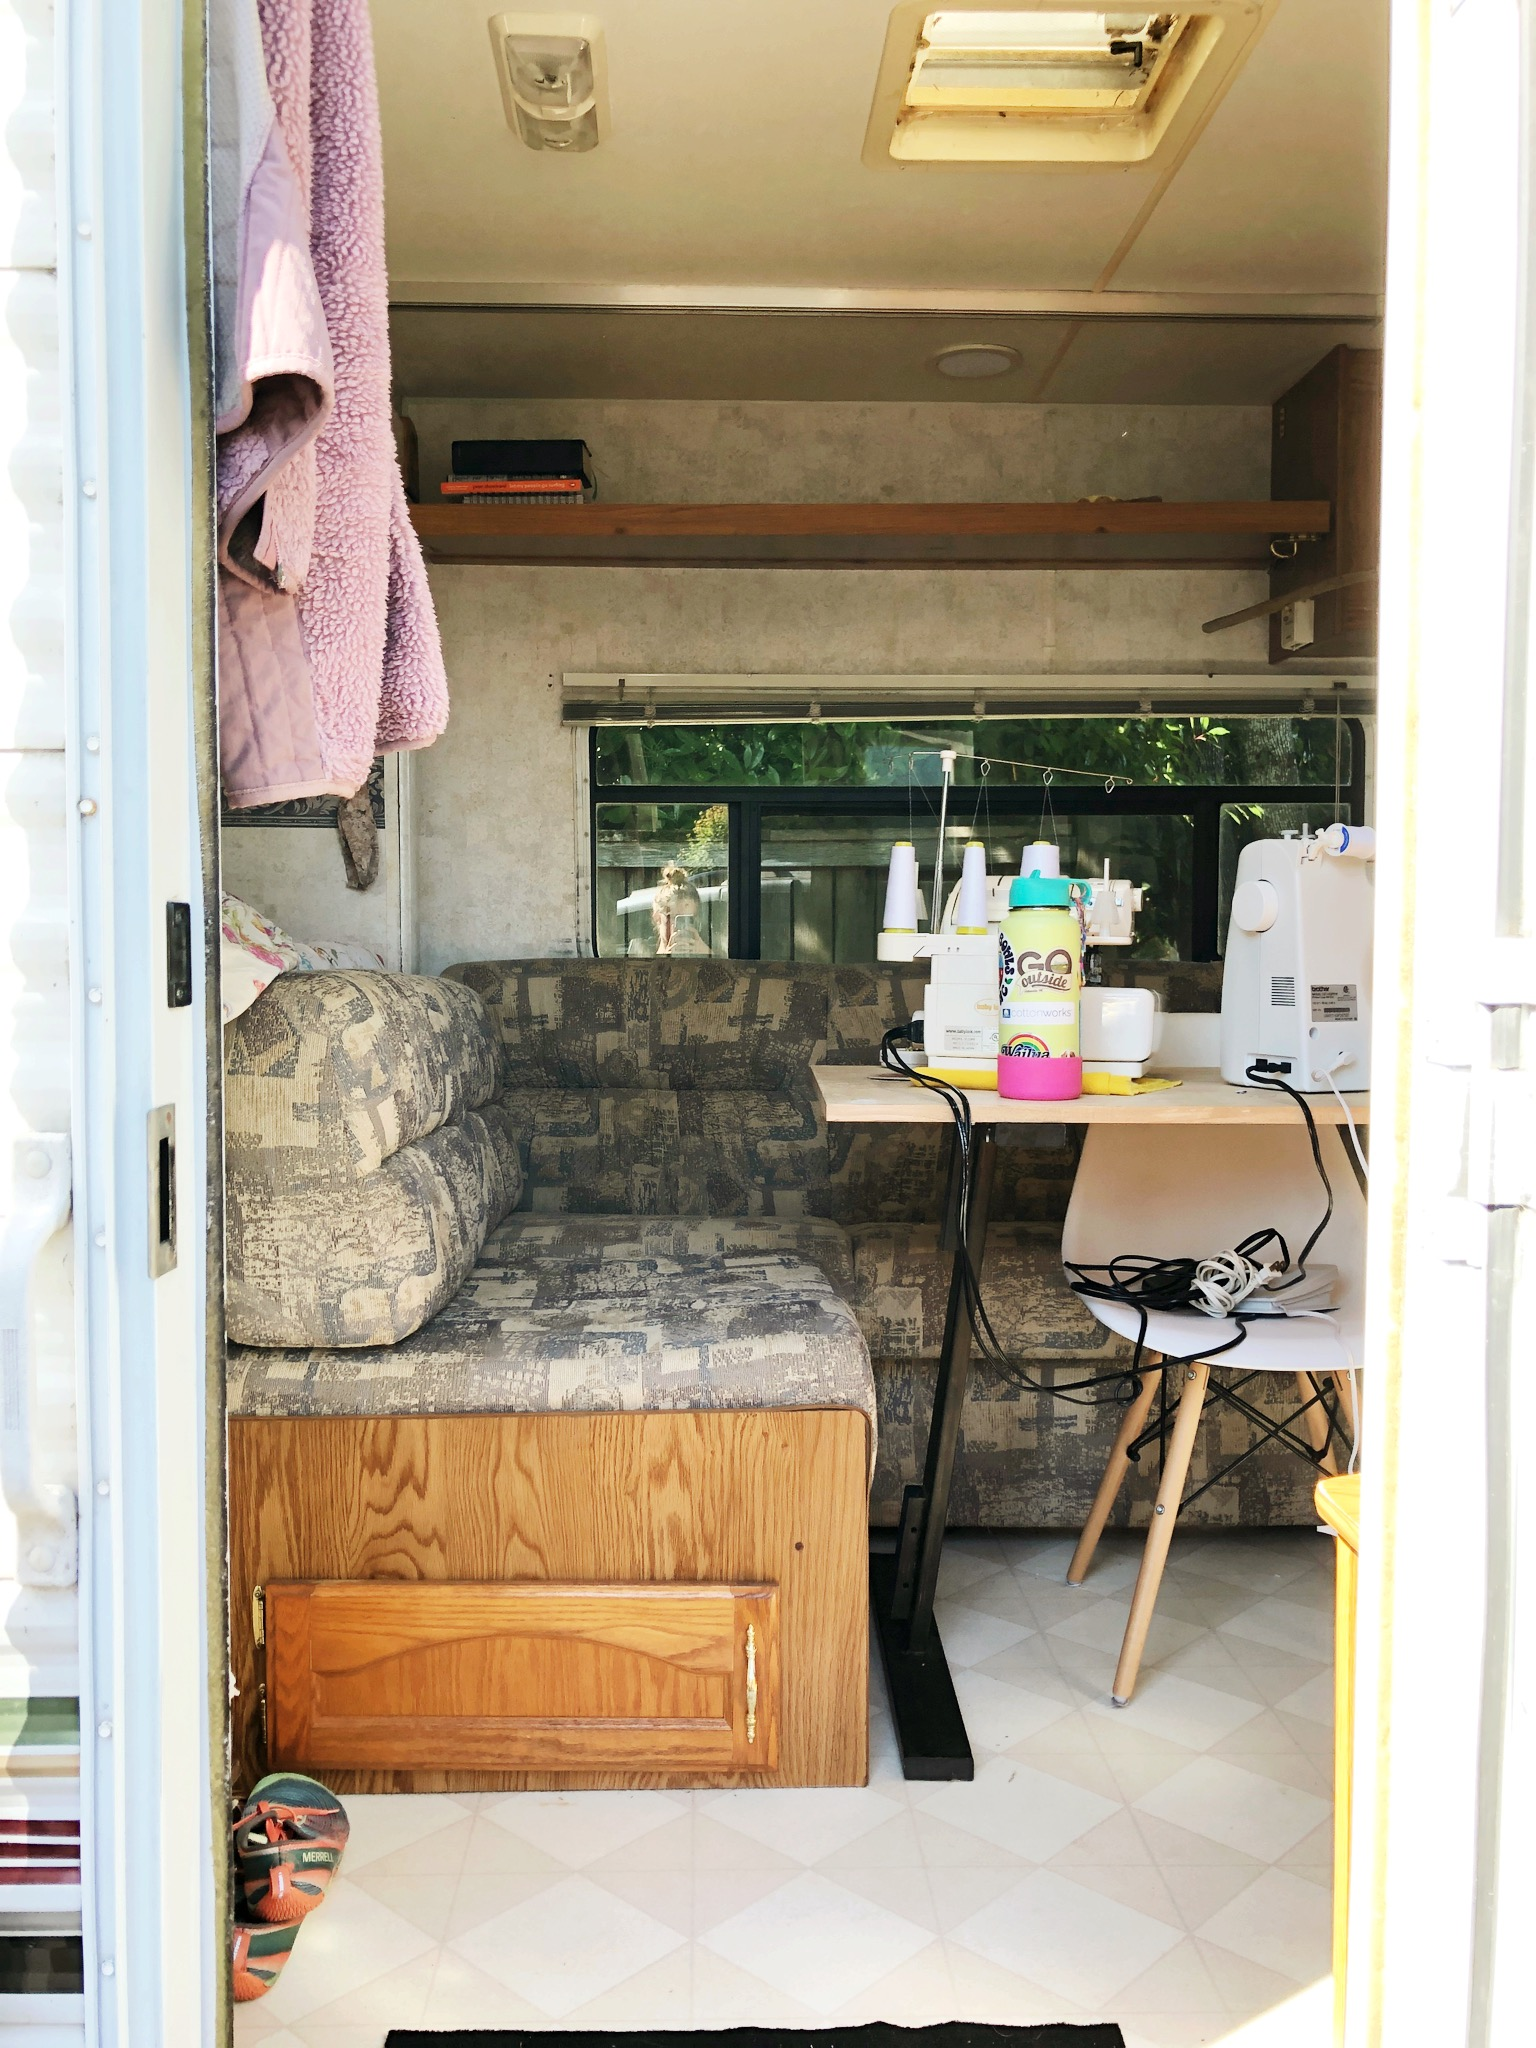 This is the entrance. To the left is the bed and to the right is the kitchen and bunk beds. My shoes go to the left (I only have three pairs) and the cords to my sewing machine are put up at night in the chair.